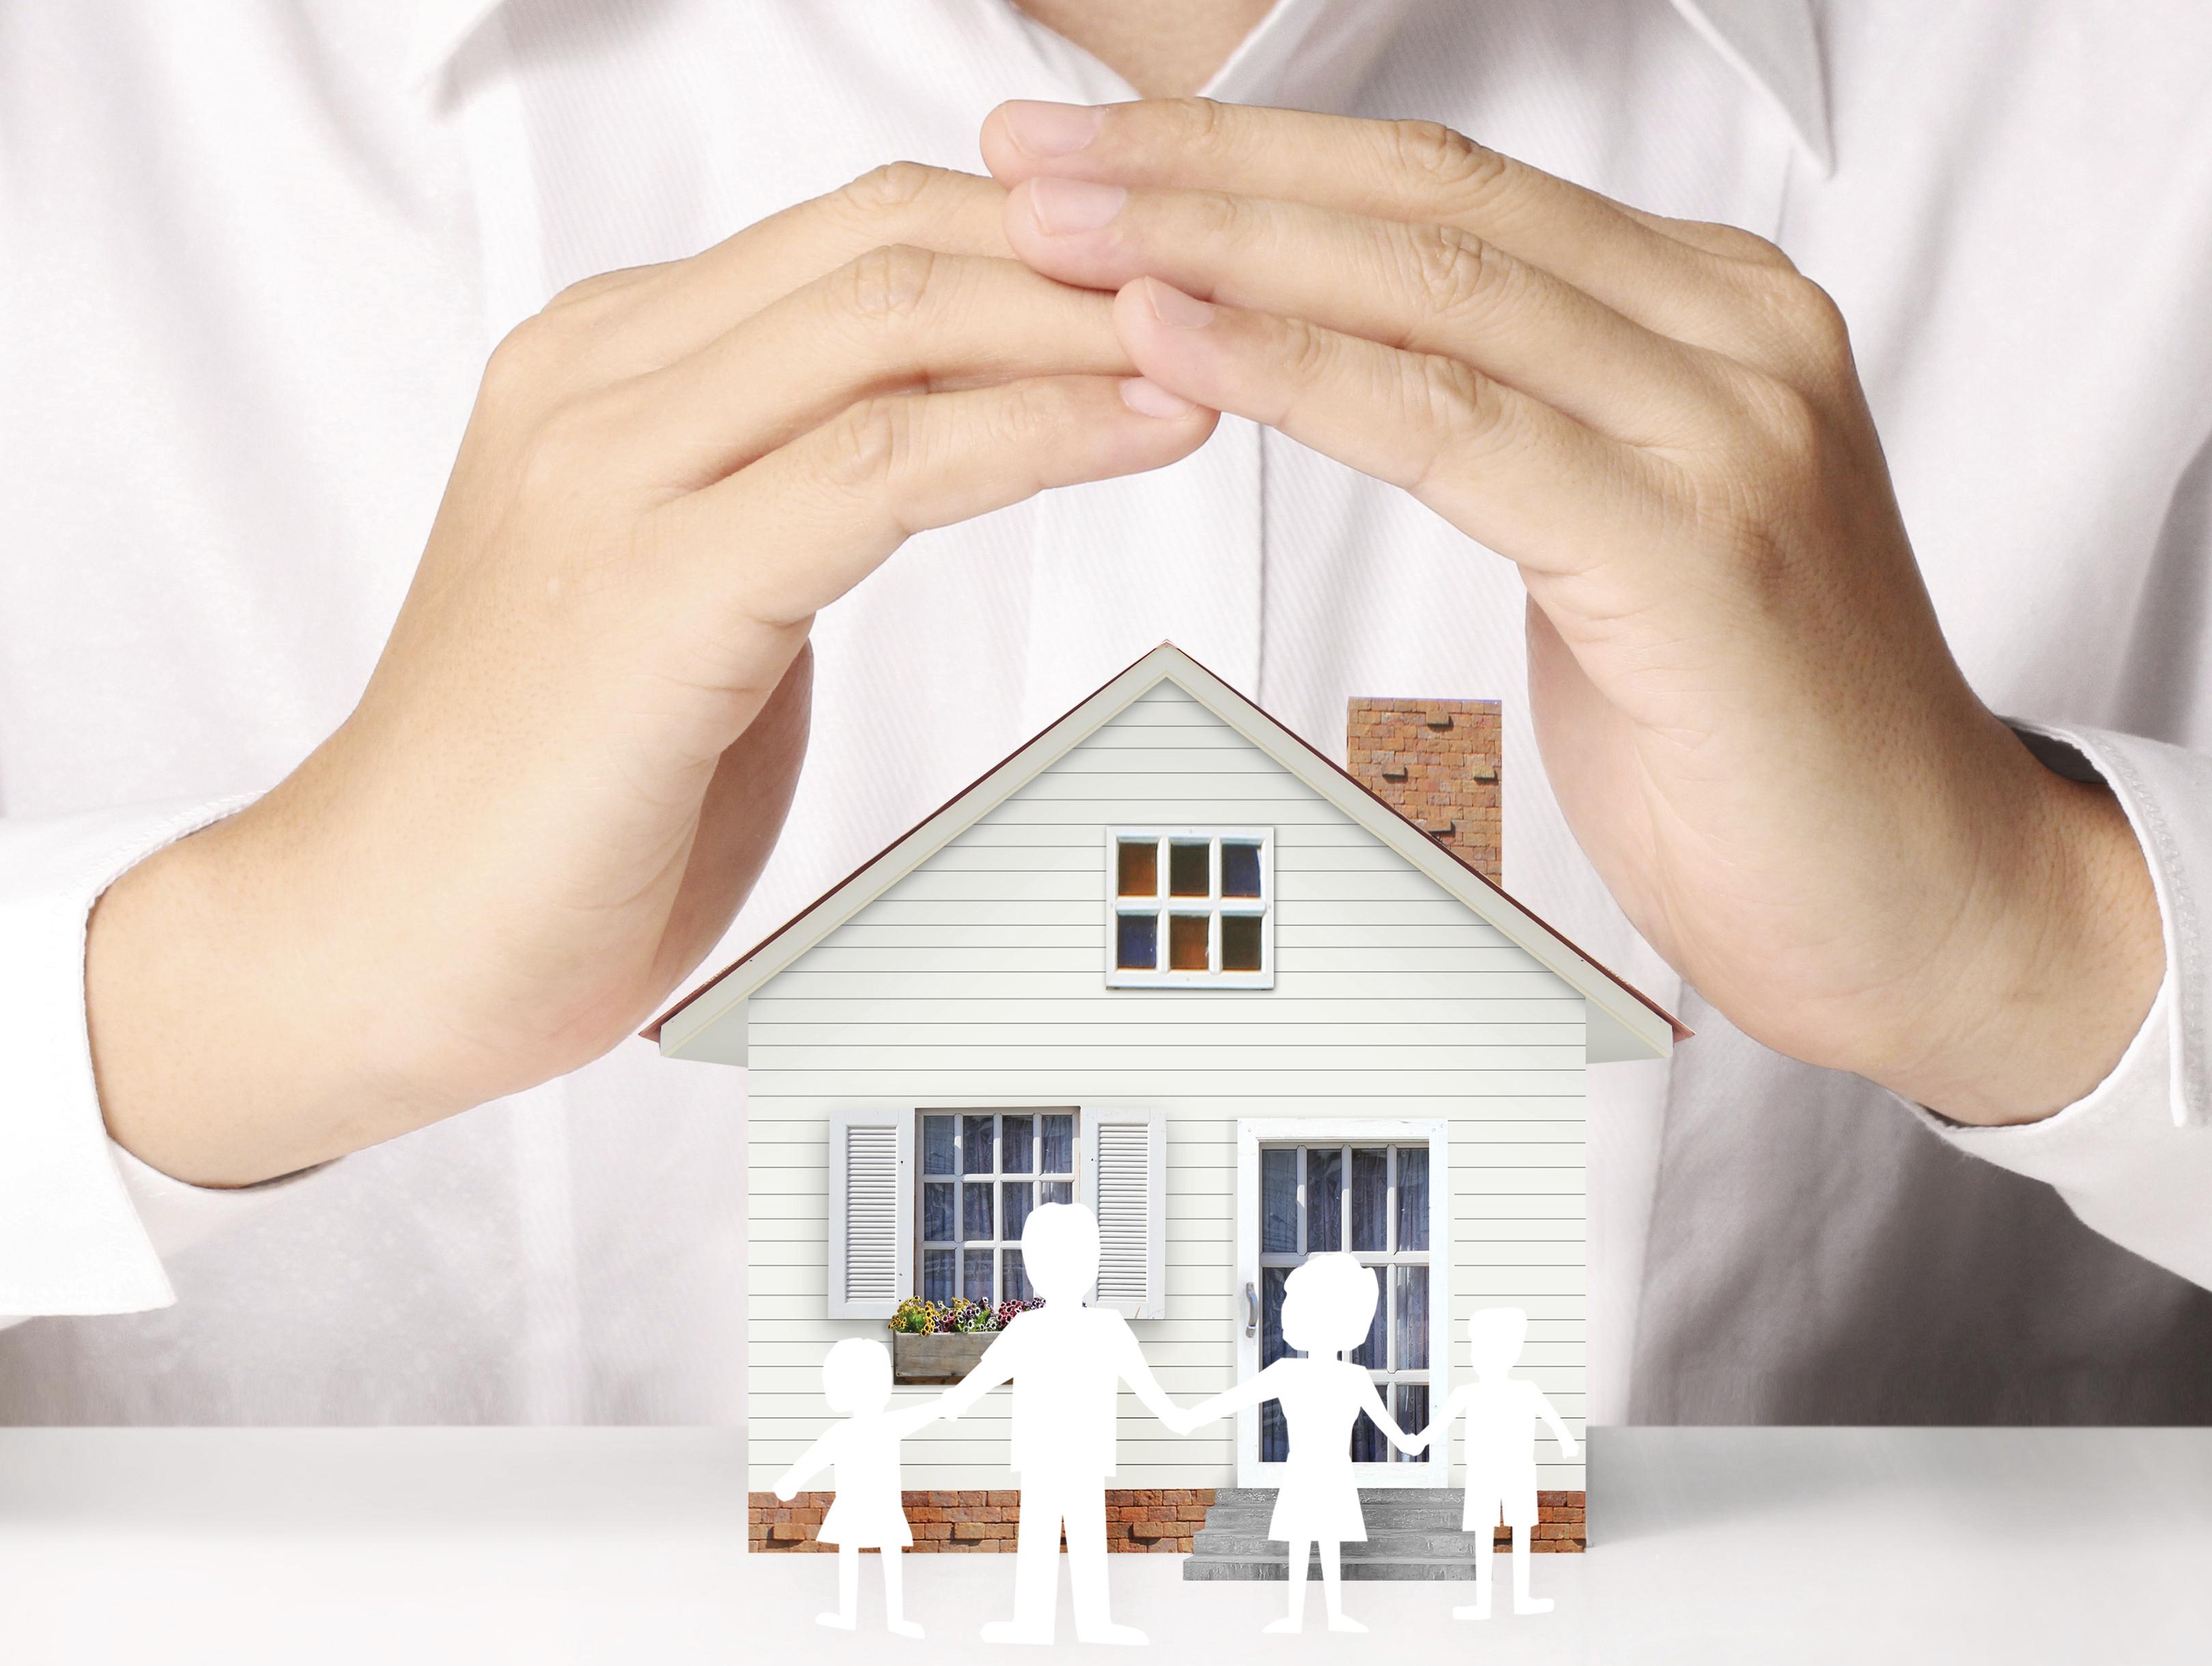 Home Protection: More Than Your Insurance Policy